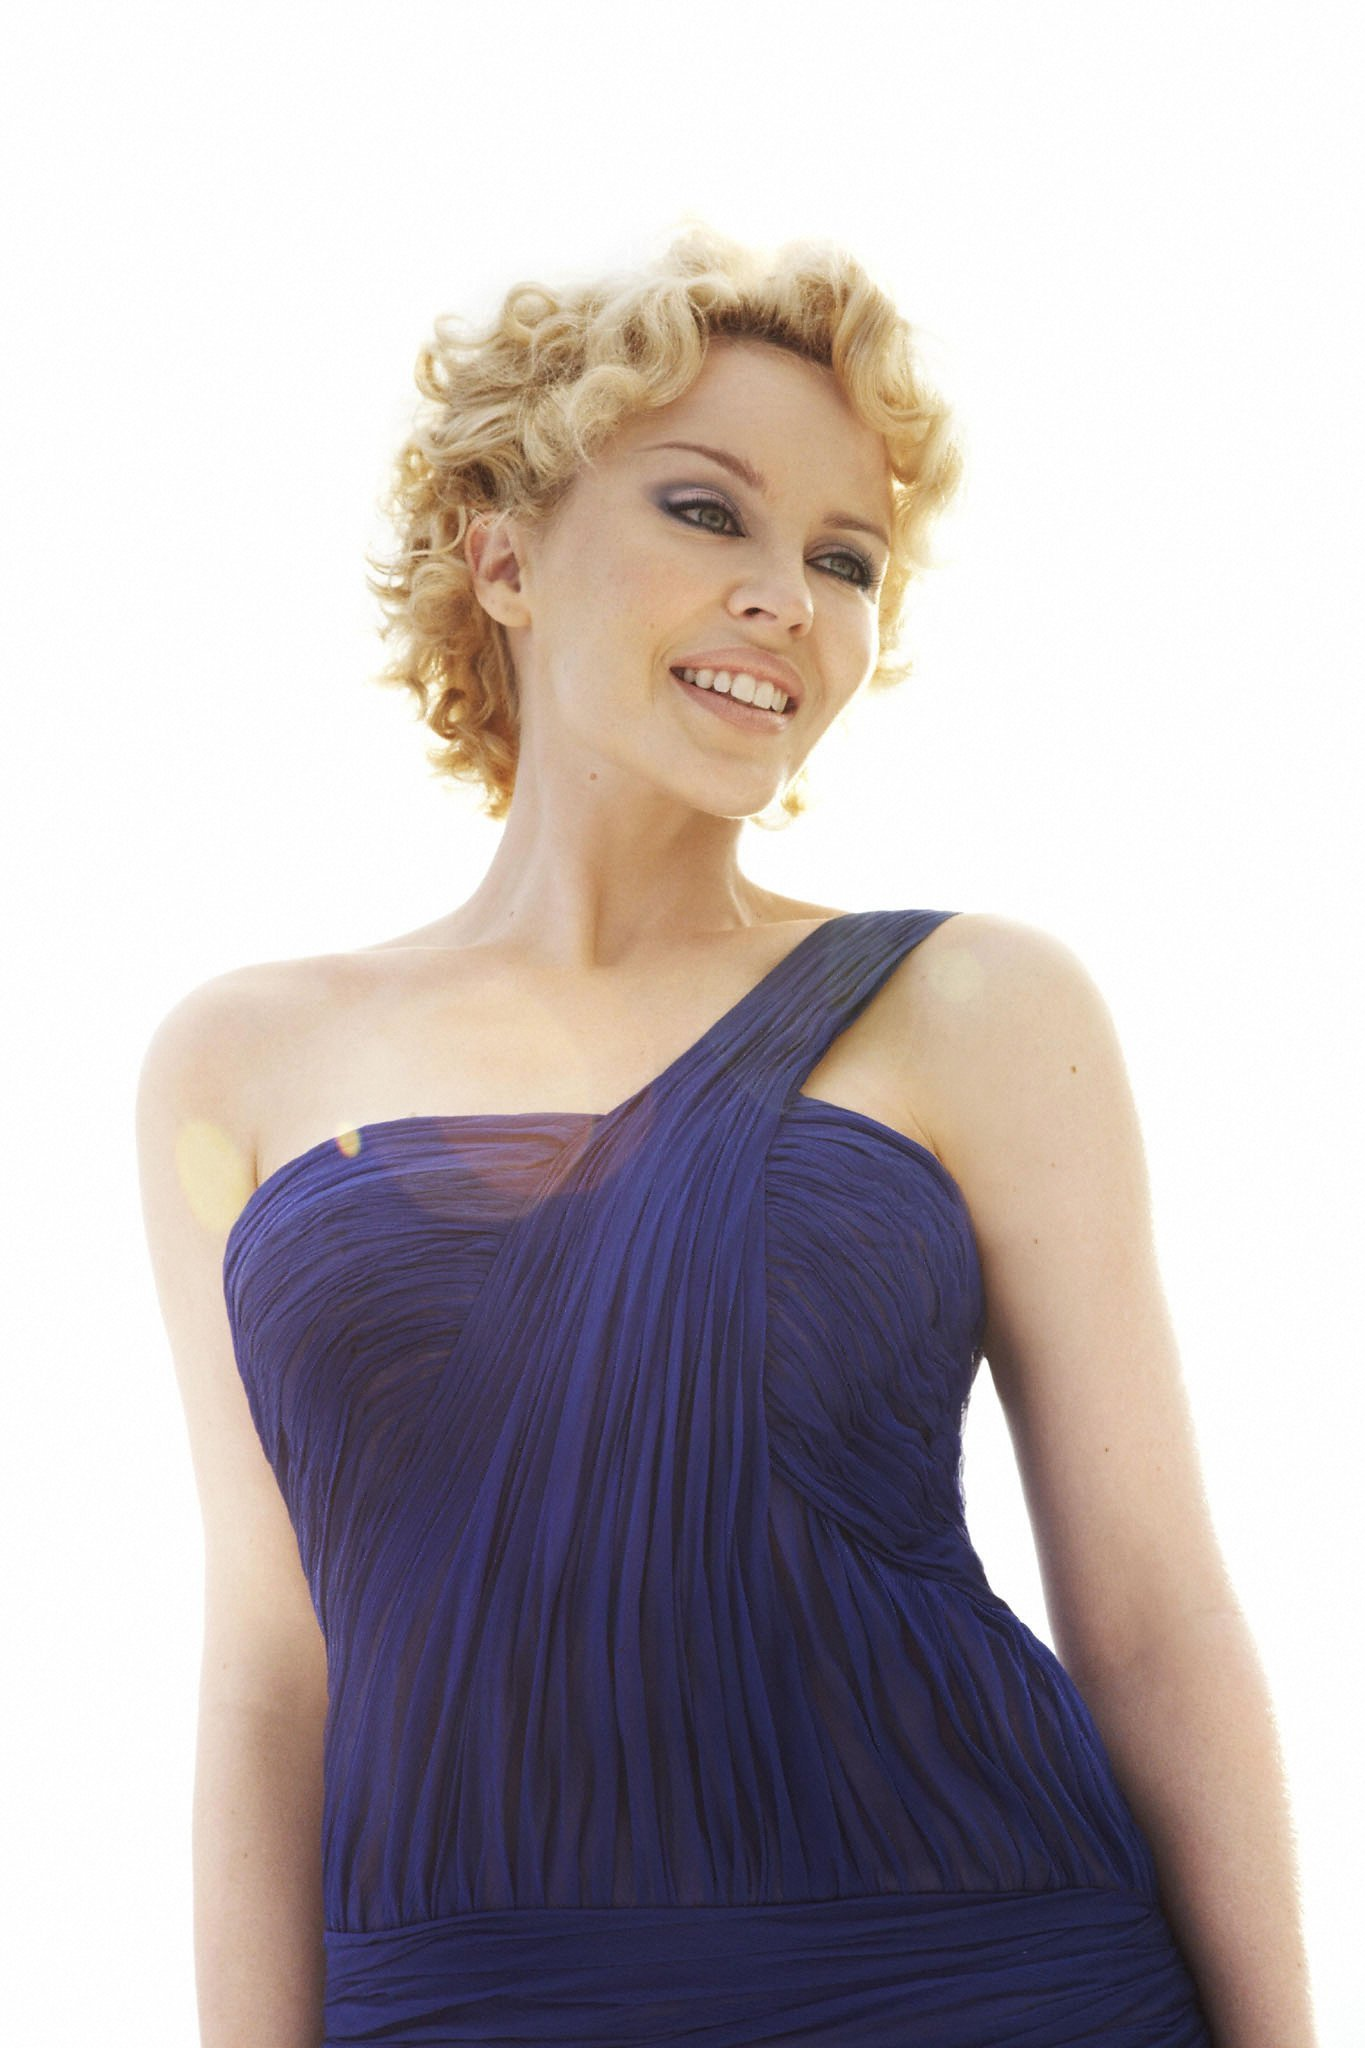 kylie minogue - photo #33